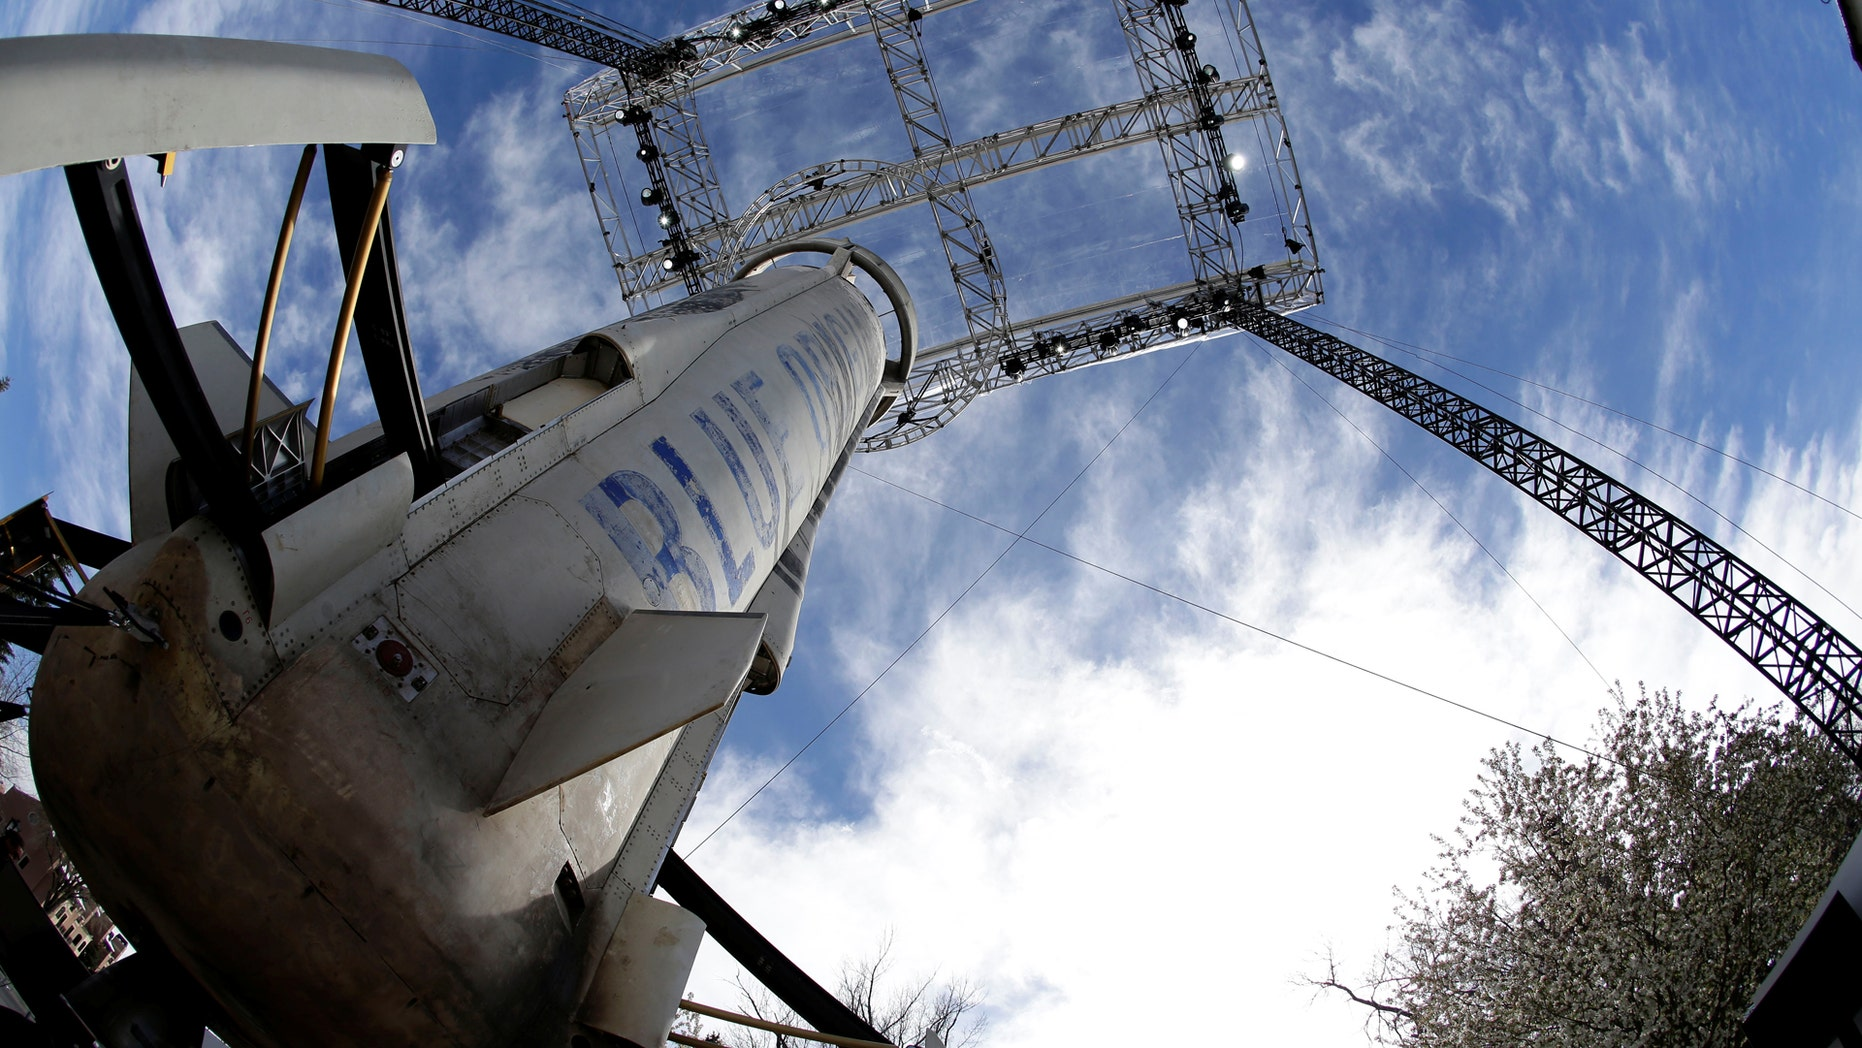 File photo: A general view of the Blue Origin New Shepard rocket booster at the 33rd Space Symposium in Colorado Springs, Colorado, United States April 5, 2017. (REUTERS/Isaiah J. Downing)